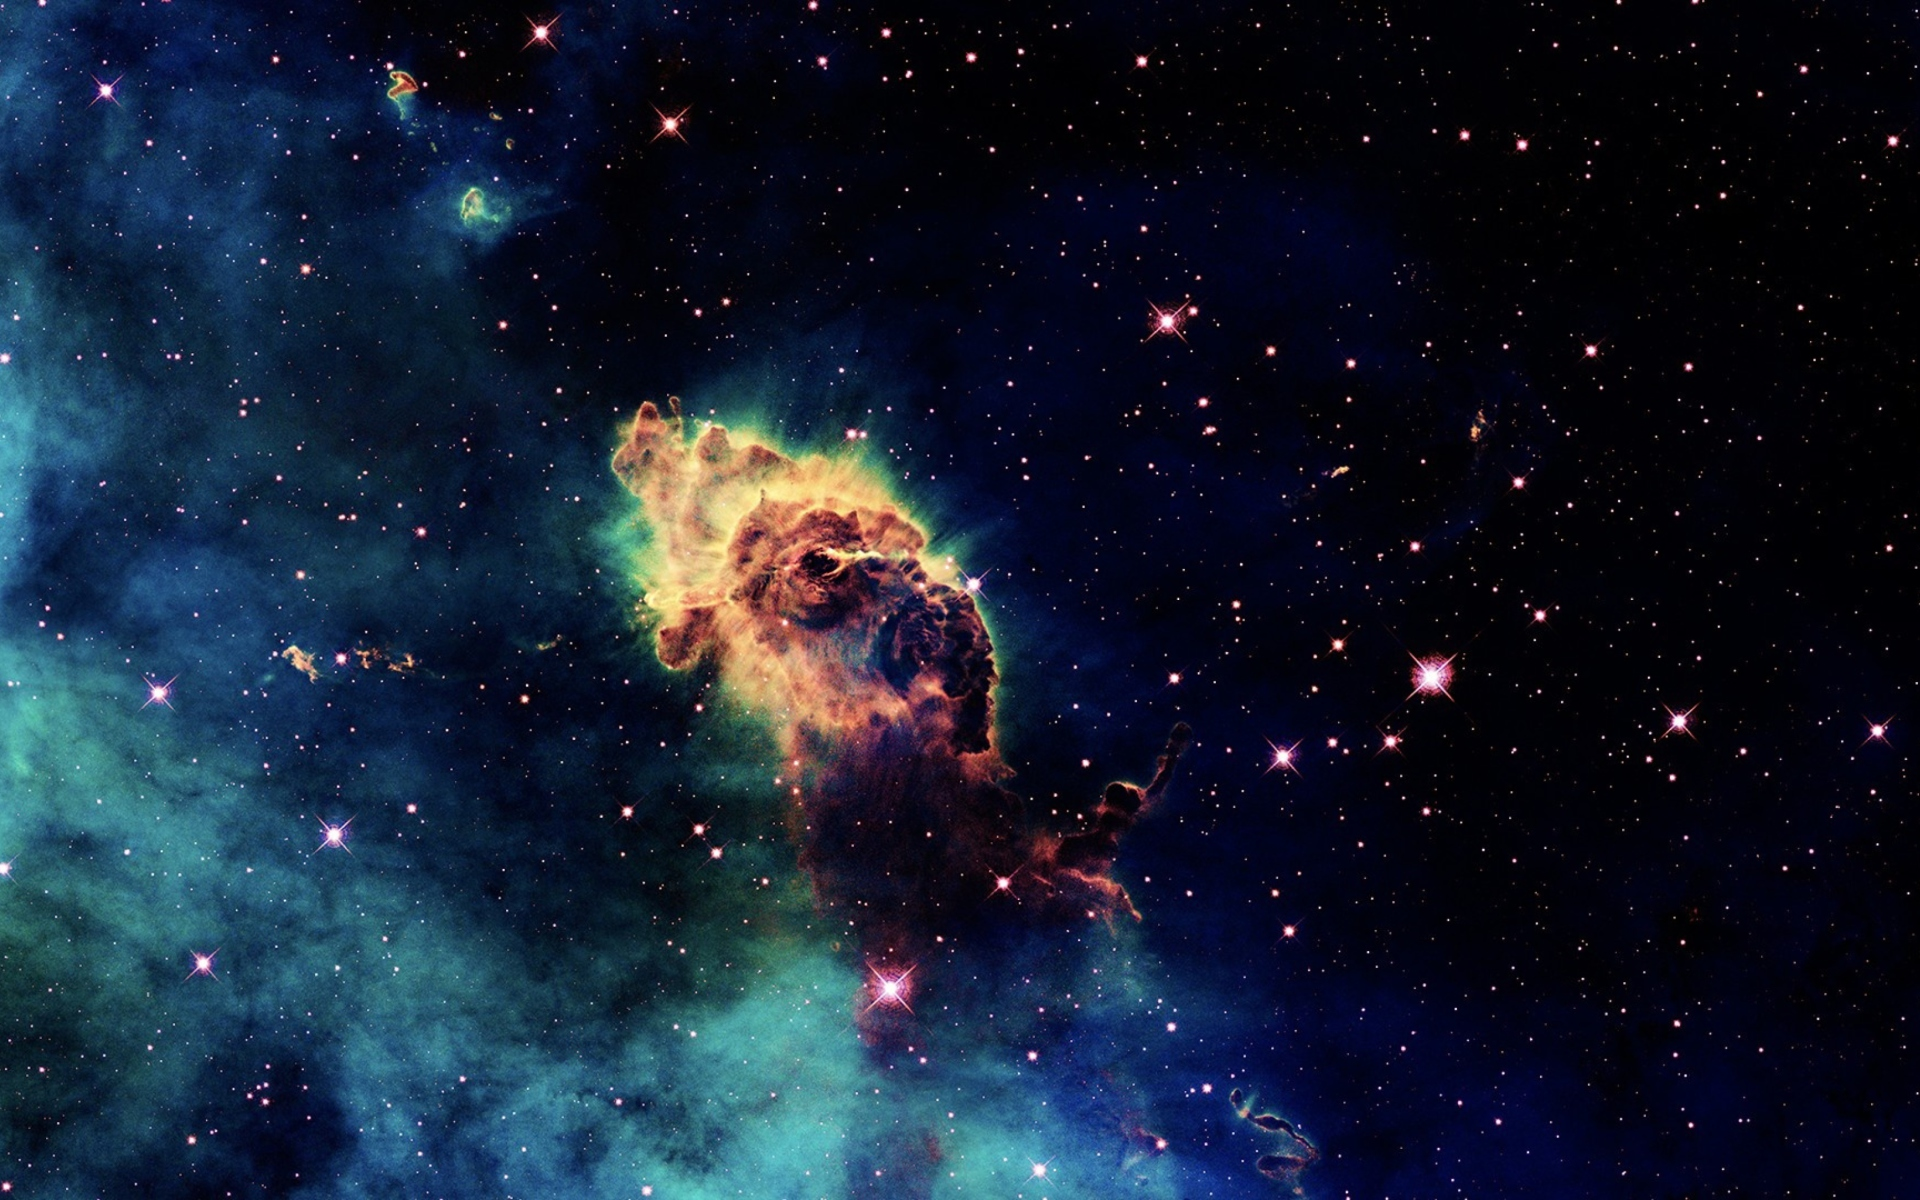 Galactic clouds wallpaper for widescreen desktop pc for Sfondi spazio hd